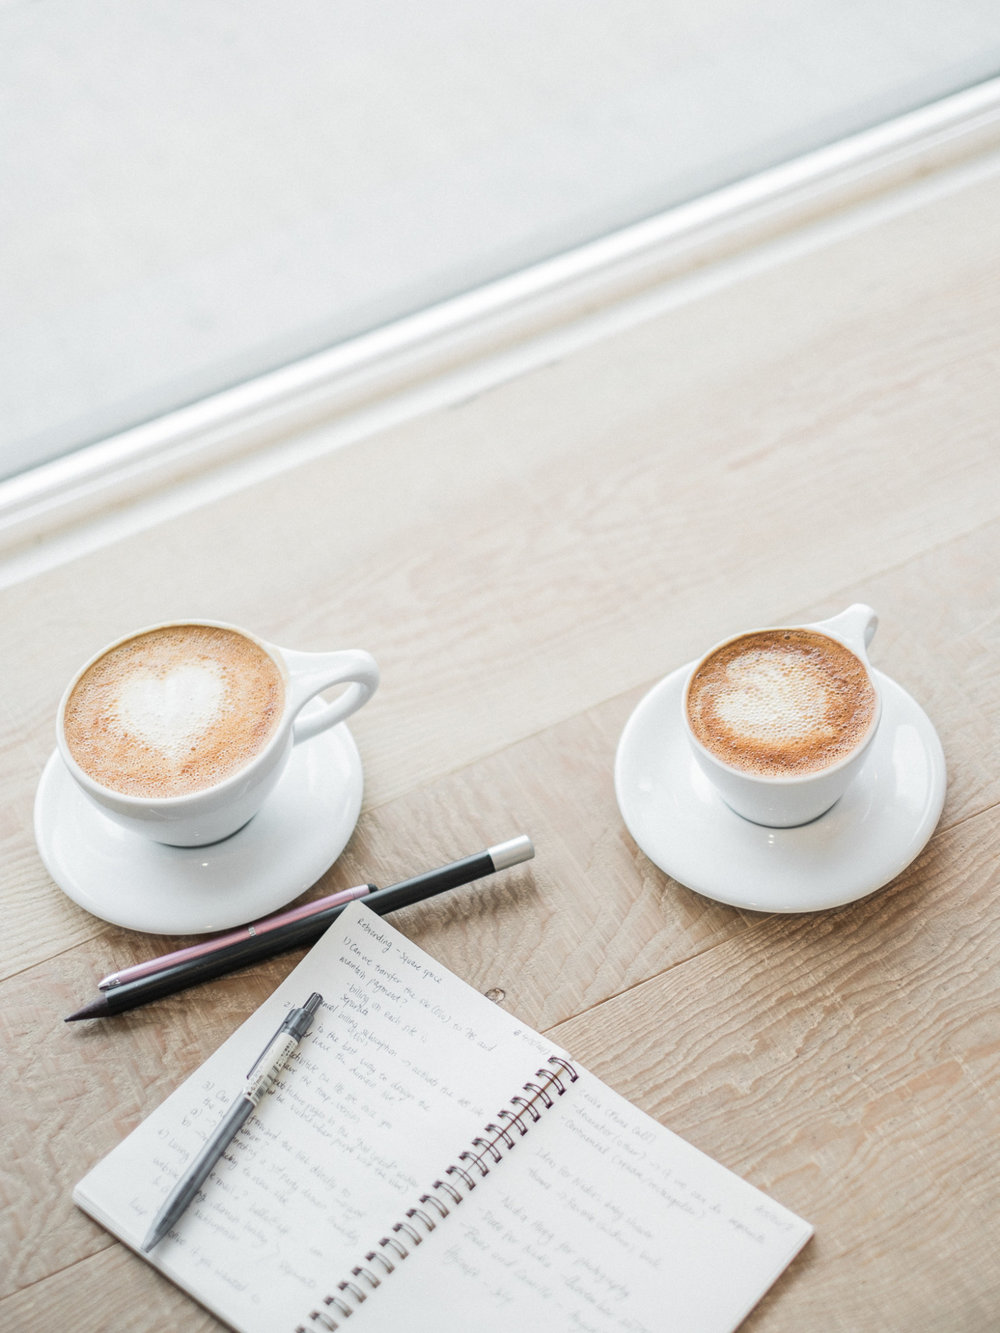 Coffee-pens-notebook-at-a-coffeeshop